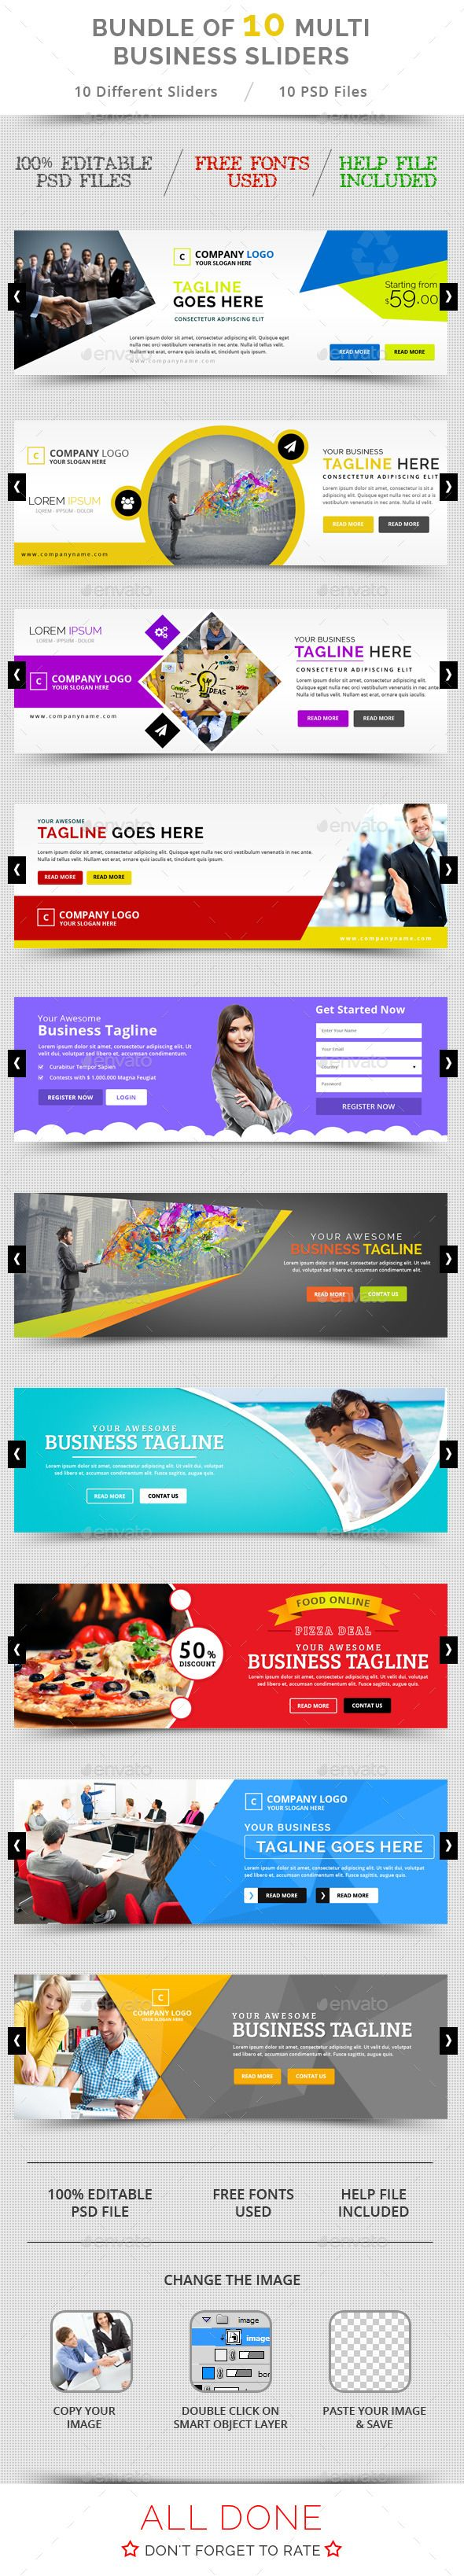 Bundle of 10 Multi Business Sliders Templates PSD. Download here: http://graphicriver.net/item/bundle-of-10-multi-business-sliders/11243569?ref=ksioks